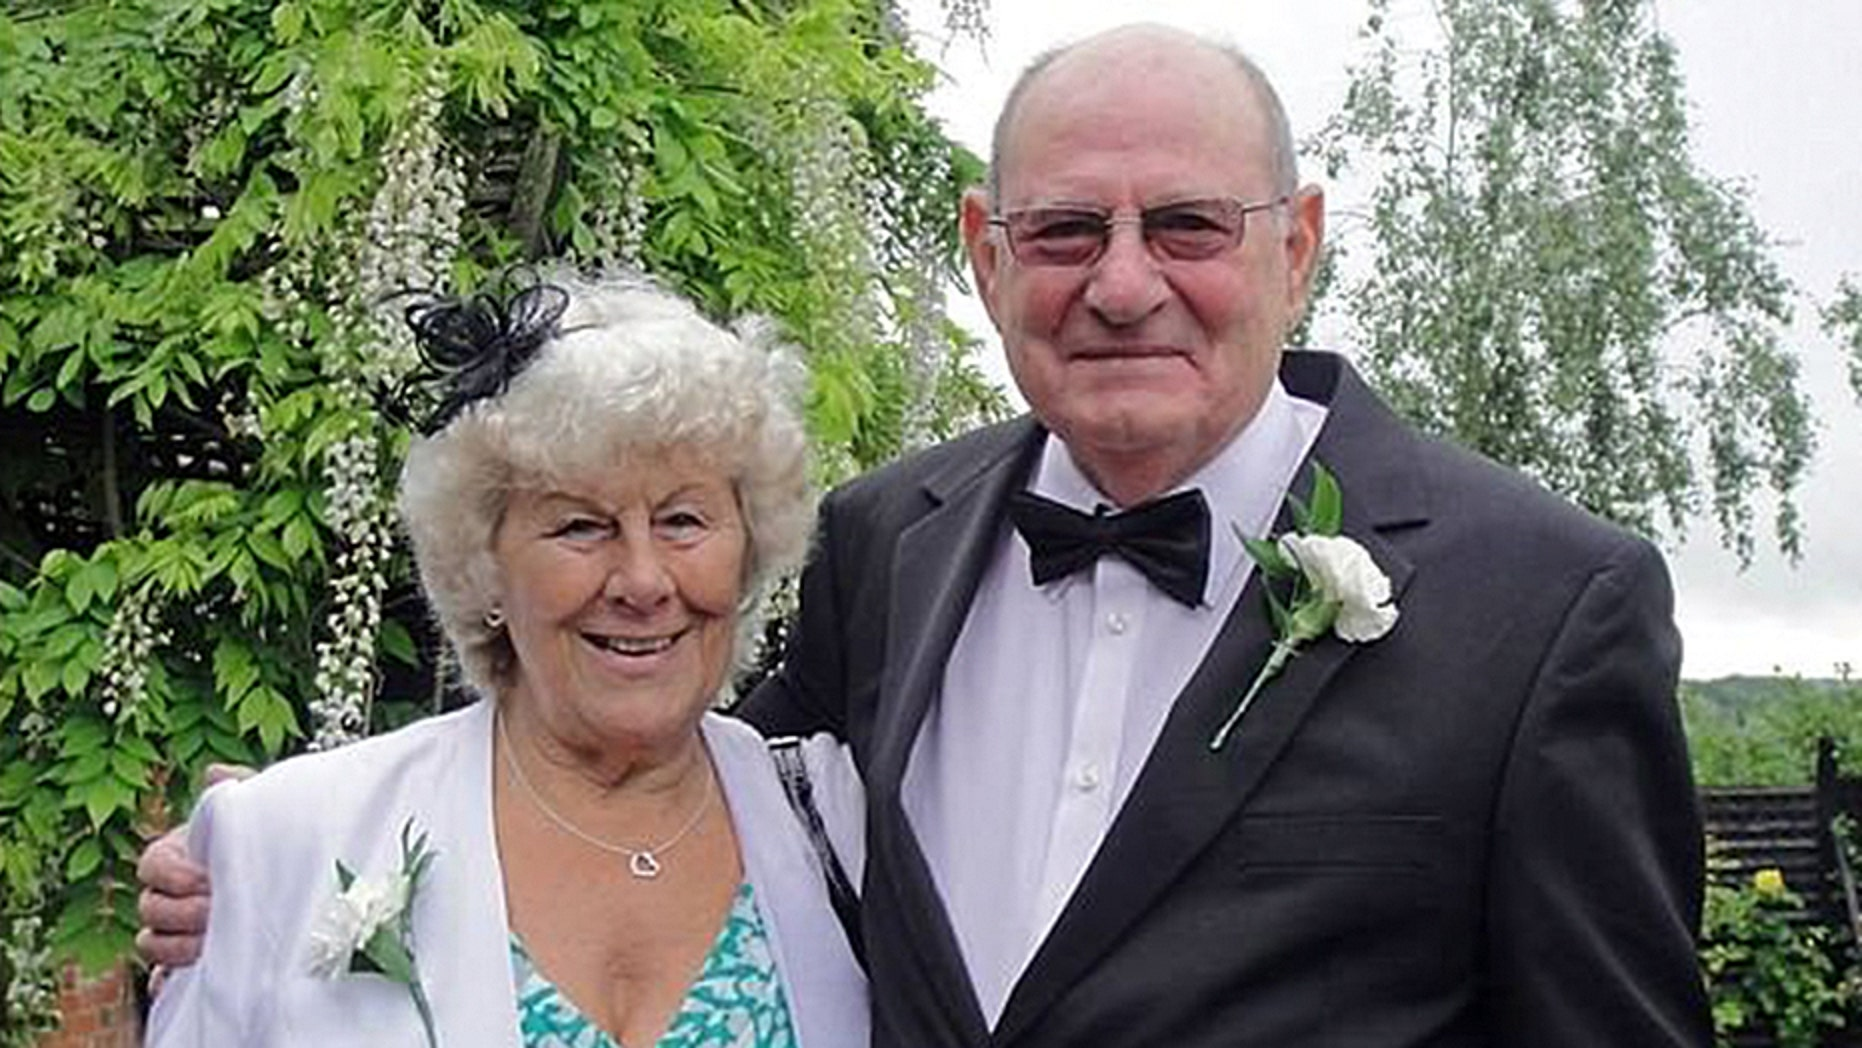 The deaths of Gloria and Alan Robson are being blamed on controversial painkiller Nolotil by their son, Gary.